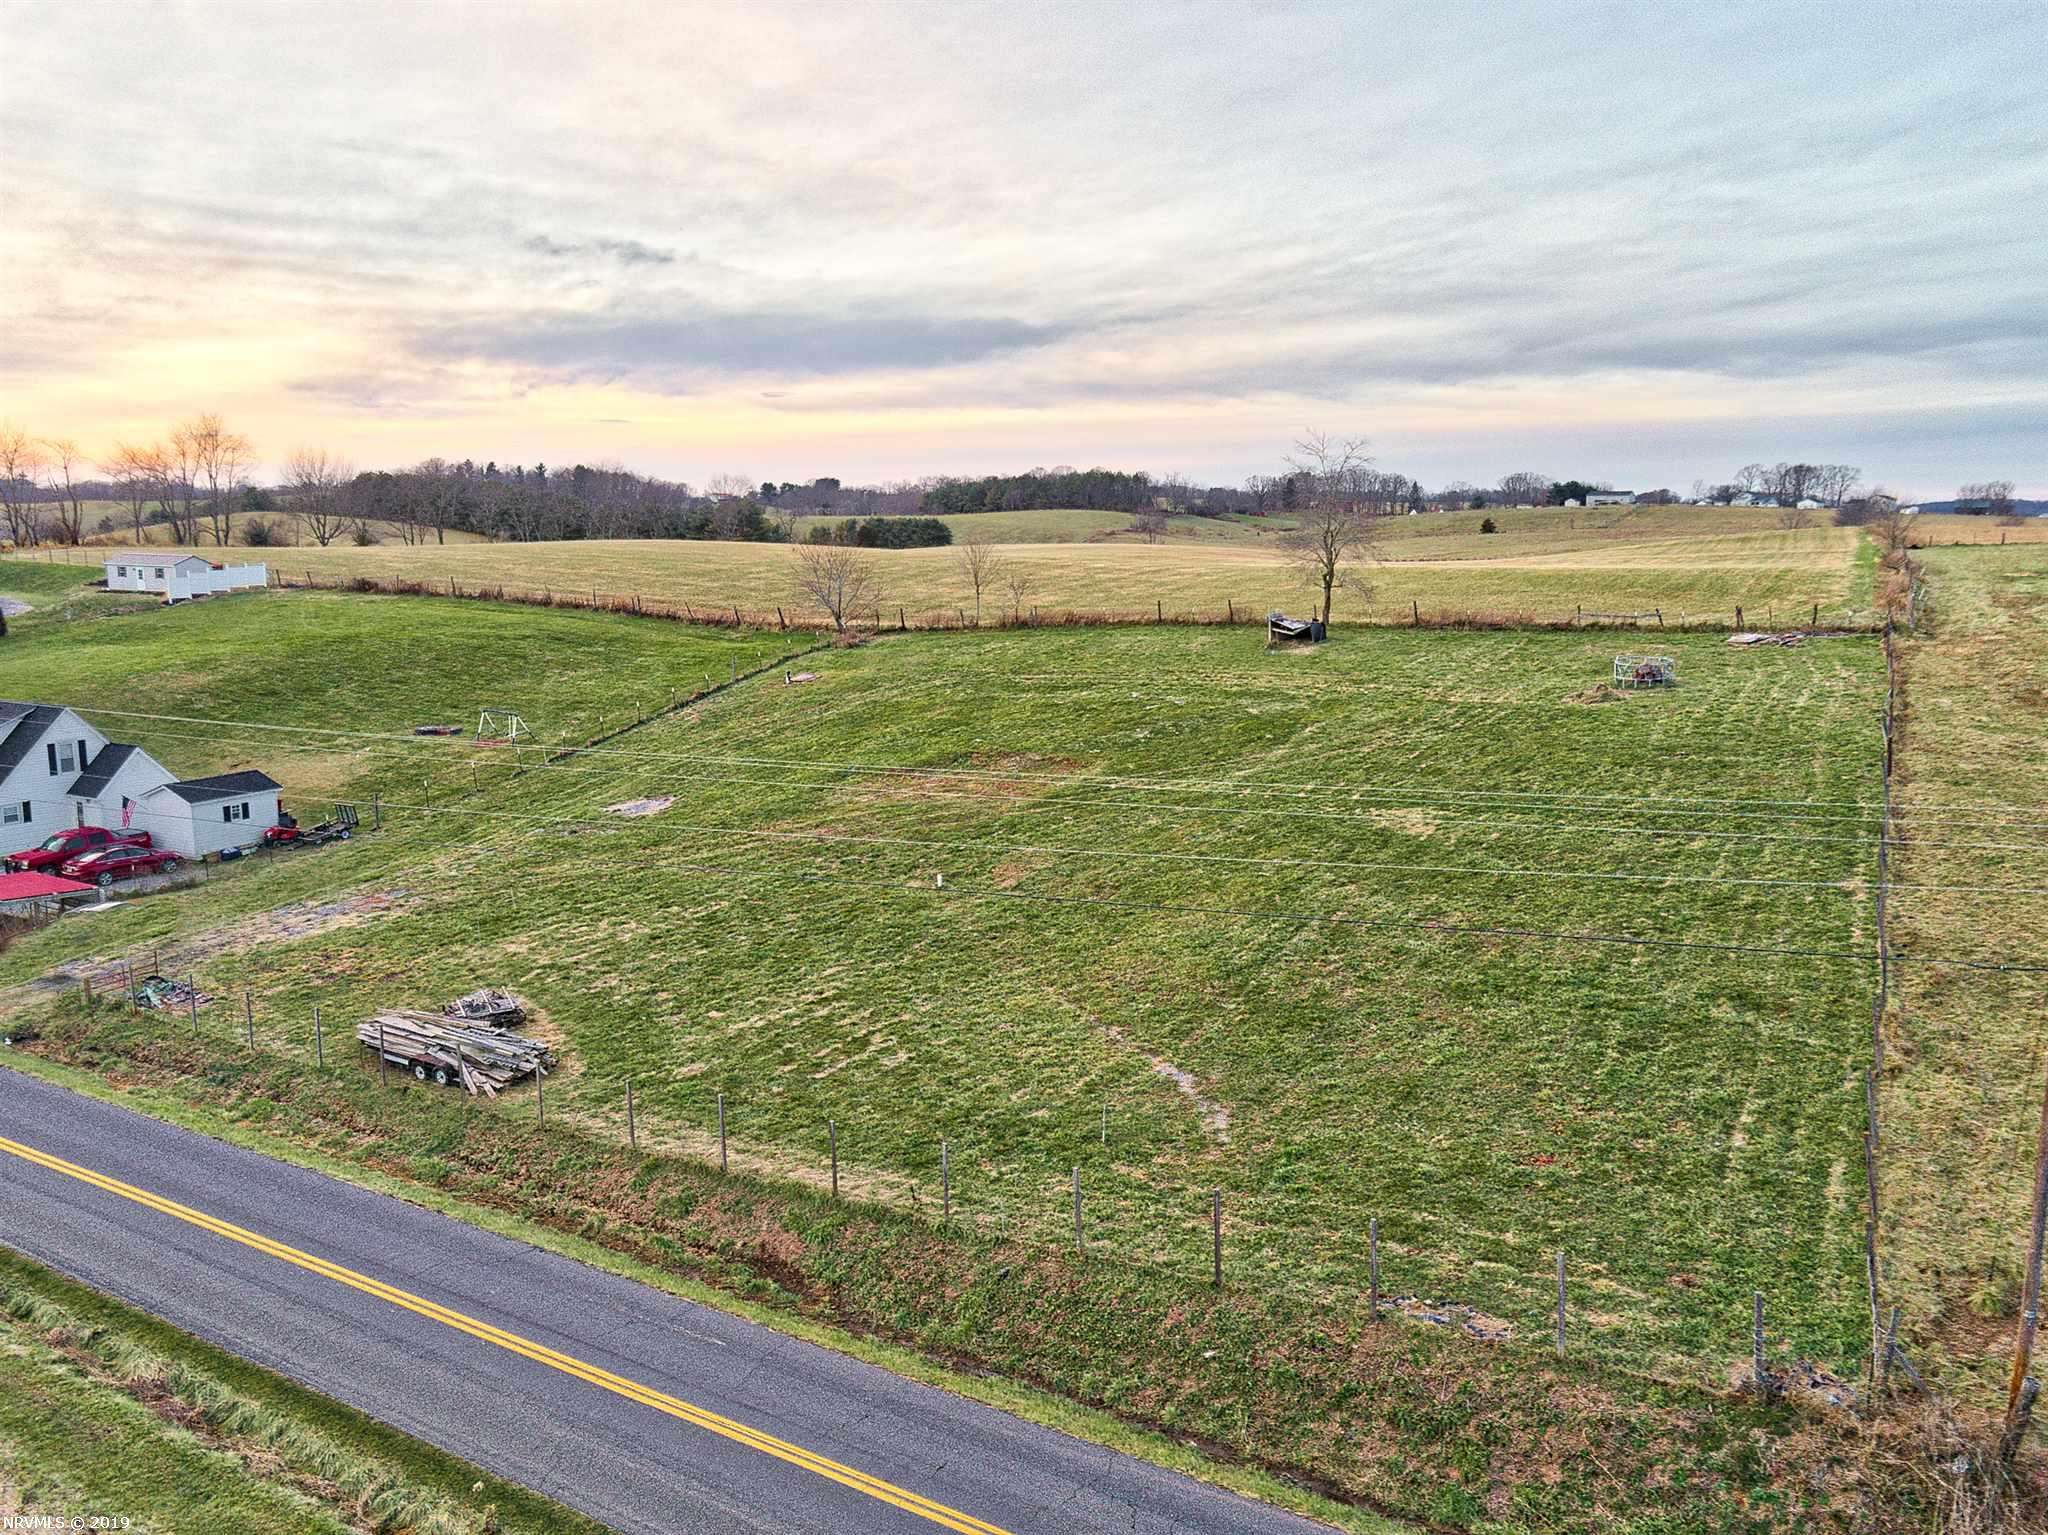 Beautiful one acre lot with an amazing view. Seller has already installed the well and septic system for a three bedroom home with a maximum of 4 permanent occupants. This lot is in a wonderful location, near schools and only minutes from the Town of Christiansburg. This would be a great location to build your dream home.